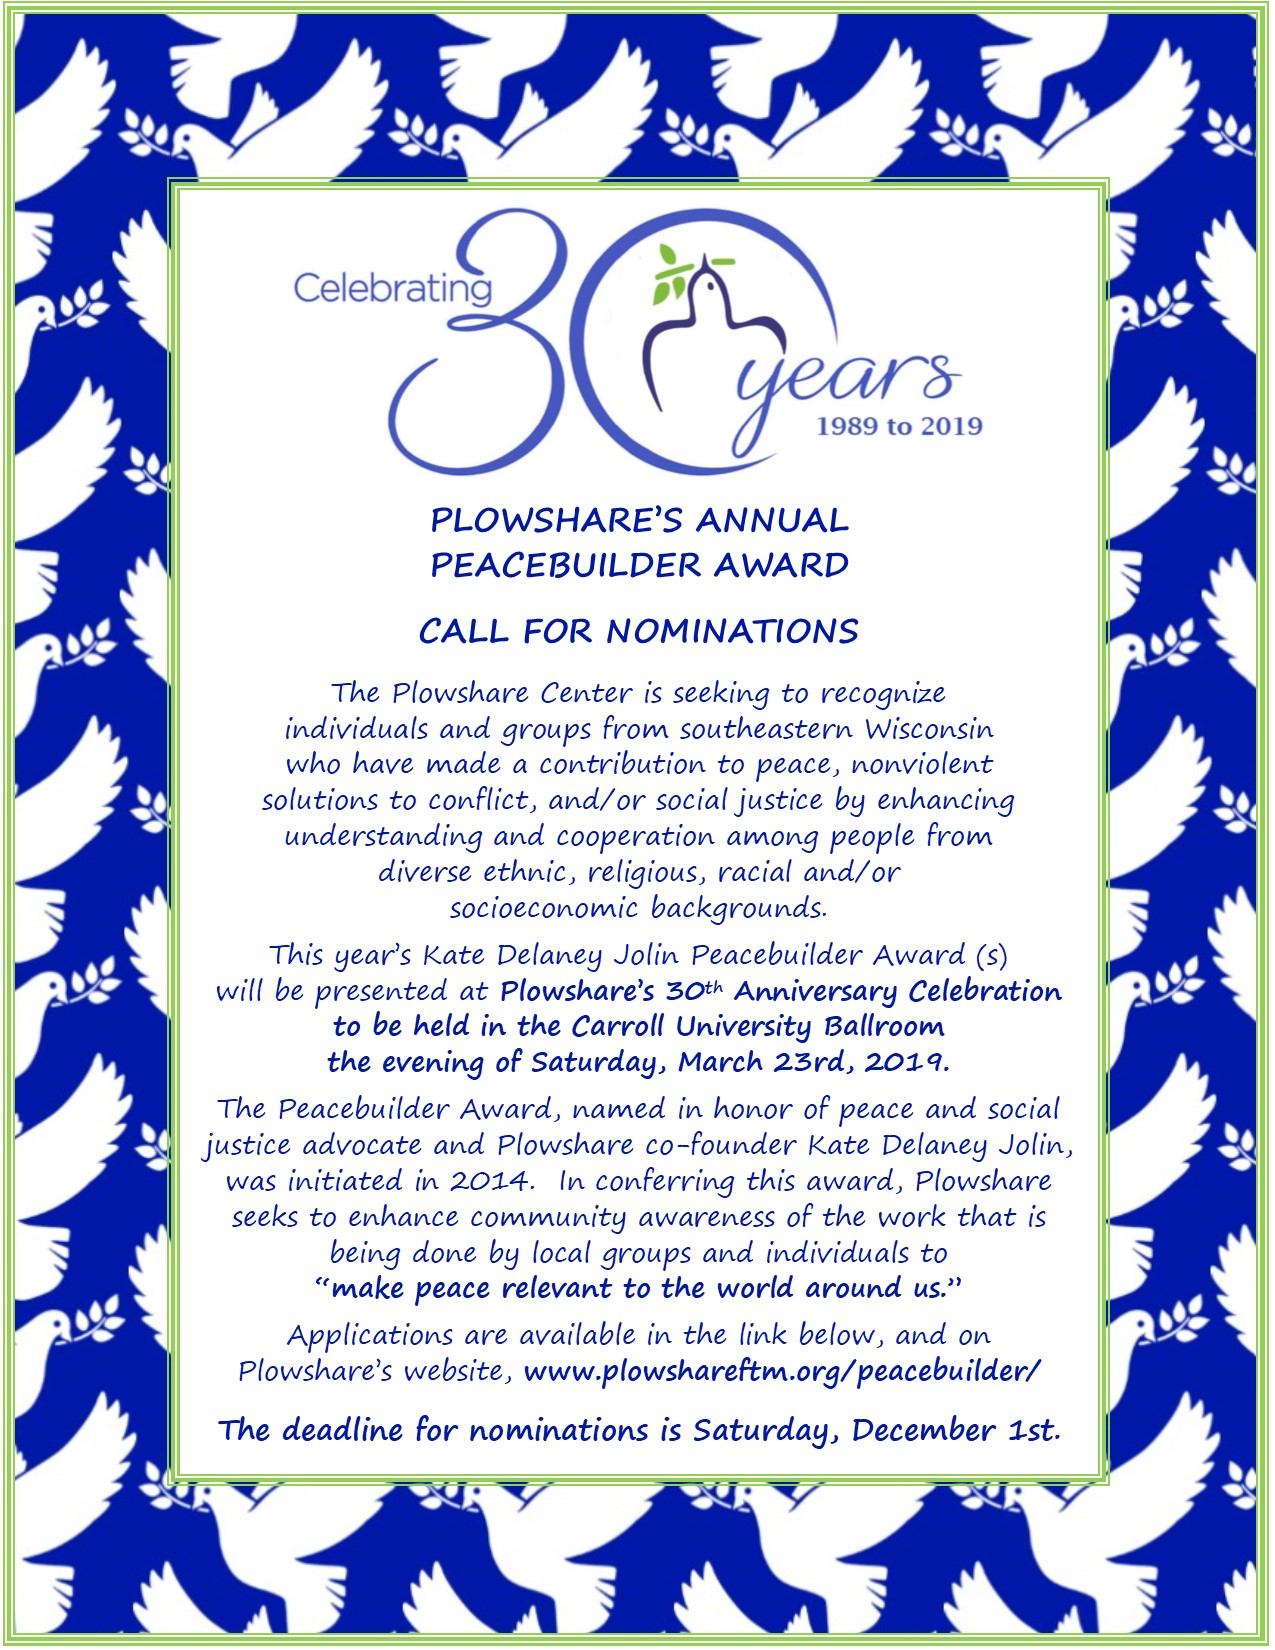 Call for Nominations a.jpg